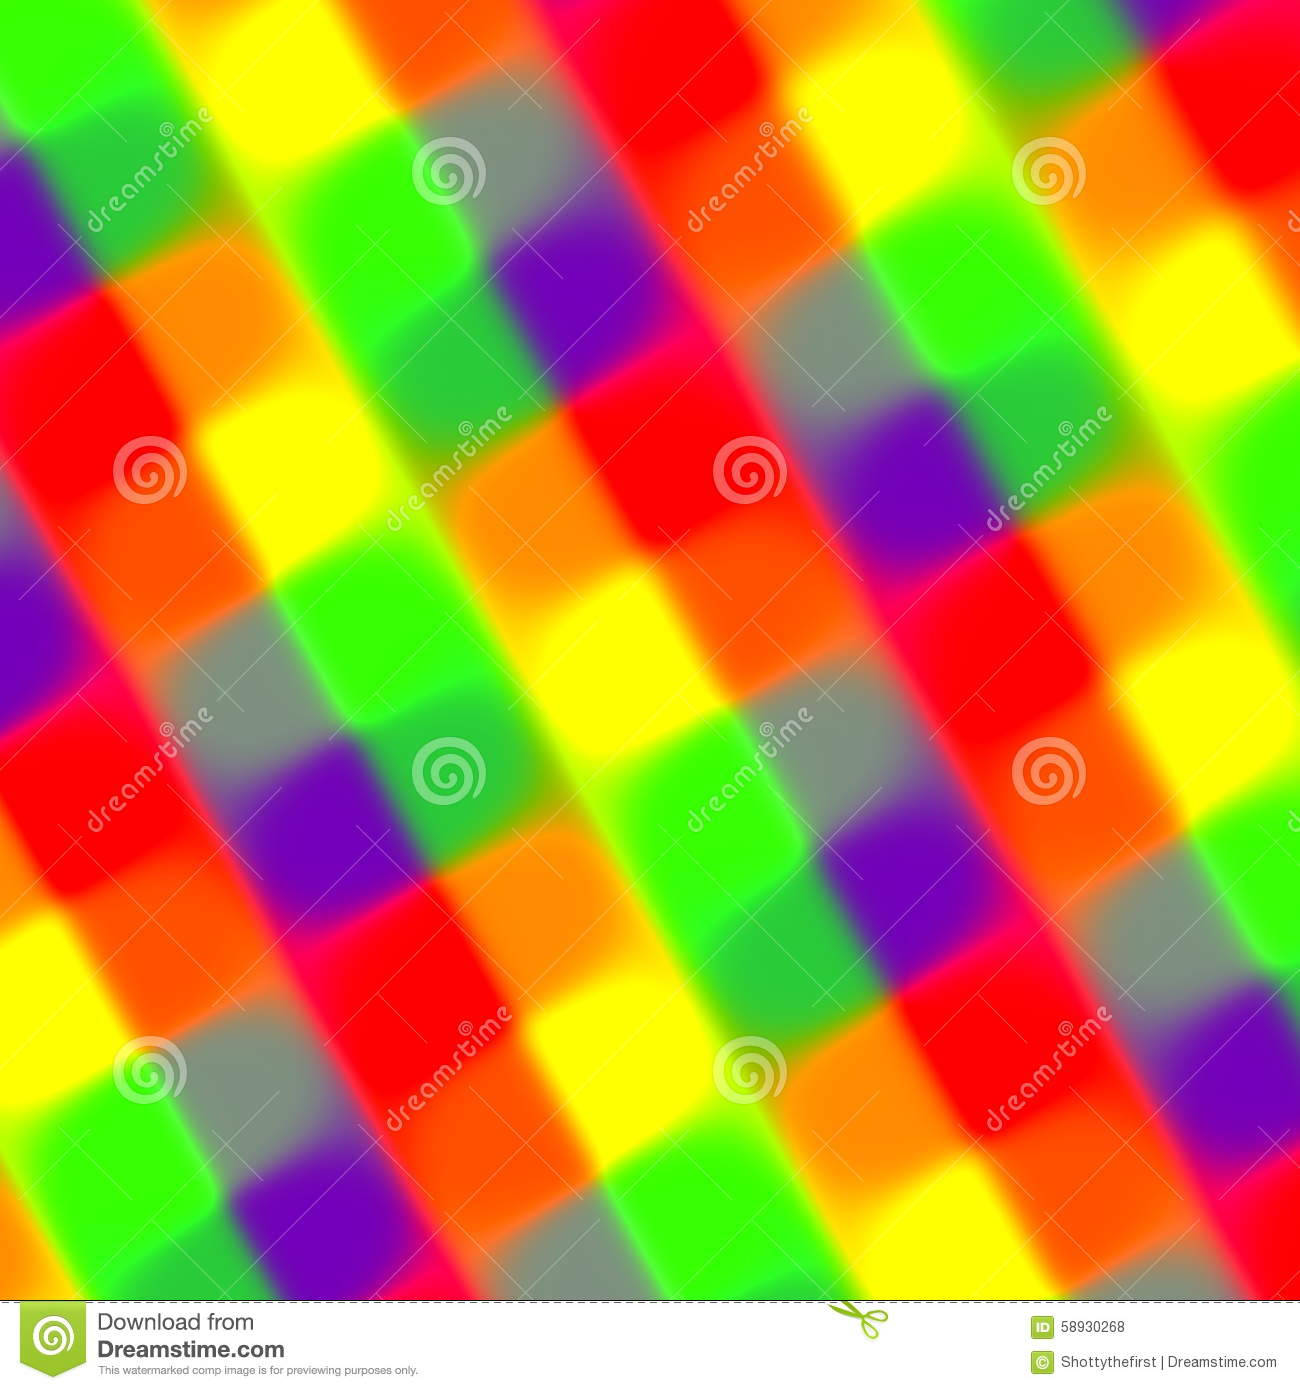 colorful blurry rectangles background web element purple green red orange yellow colors mixed. Black Bedroom Furniture Sets. Home Design Ideas